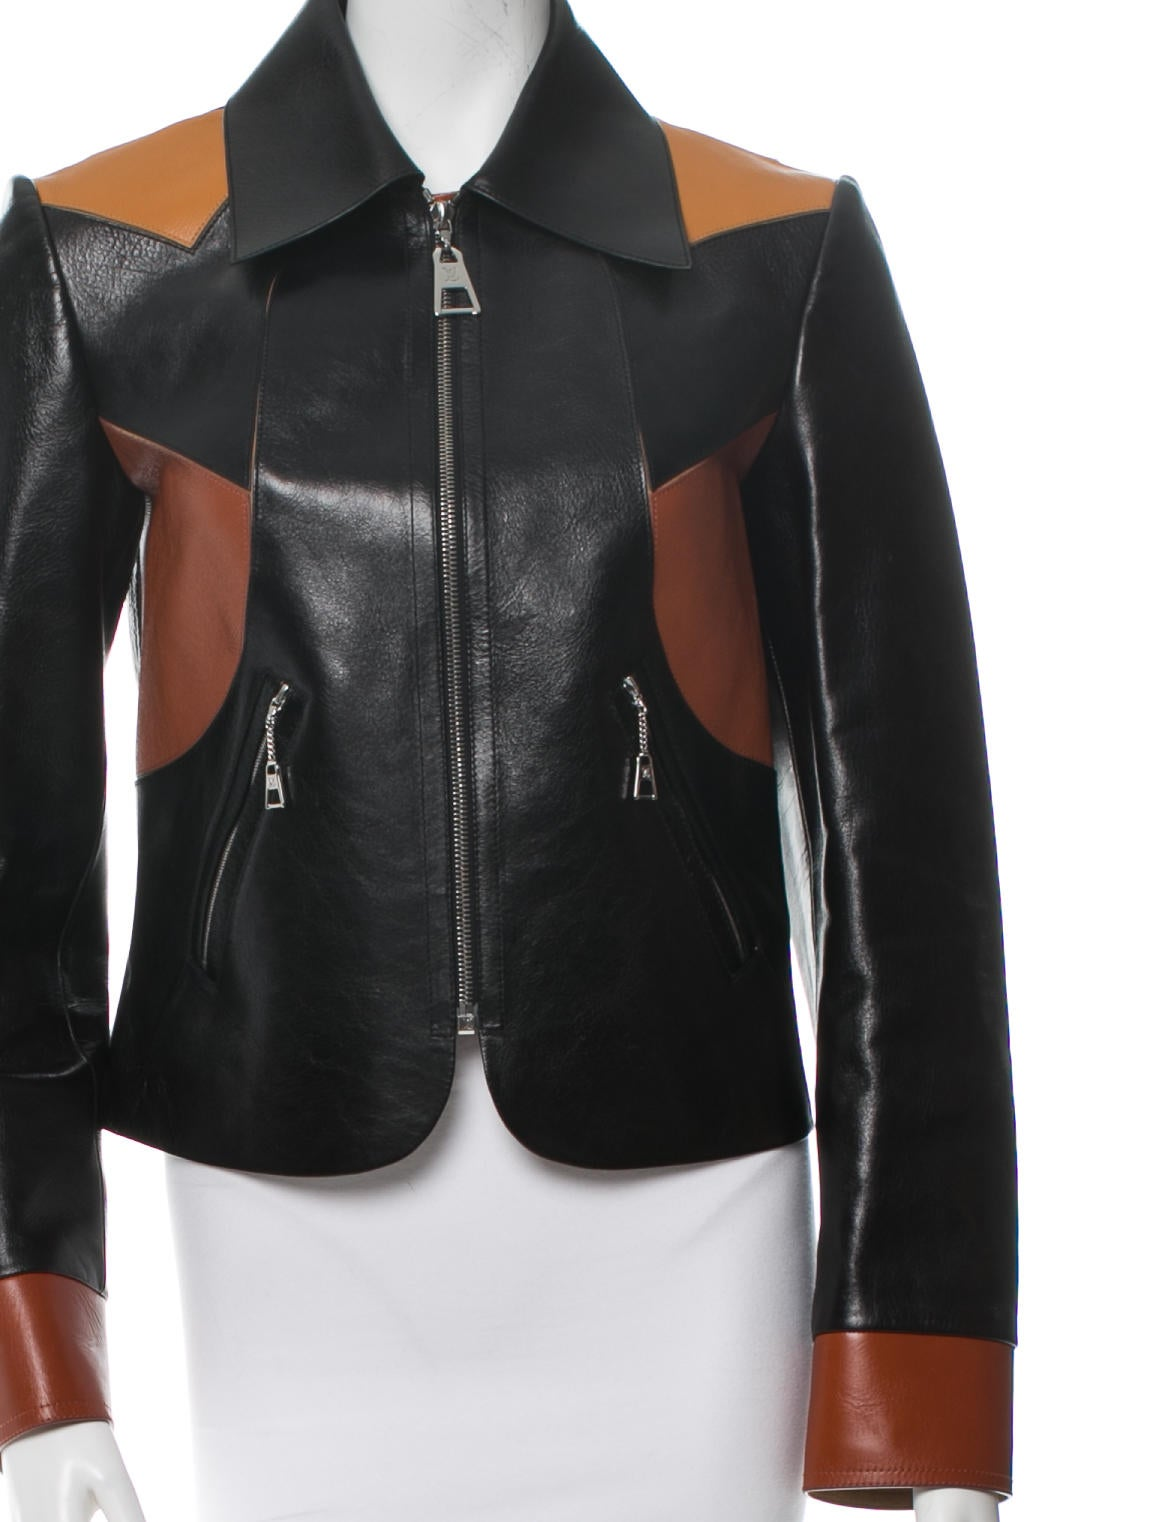 Louis vuitton leather jacket